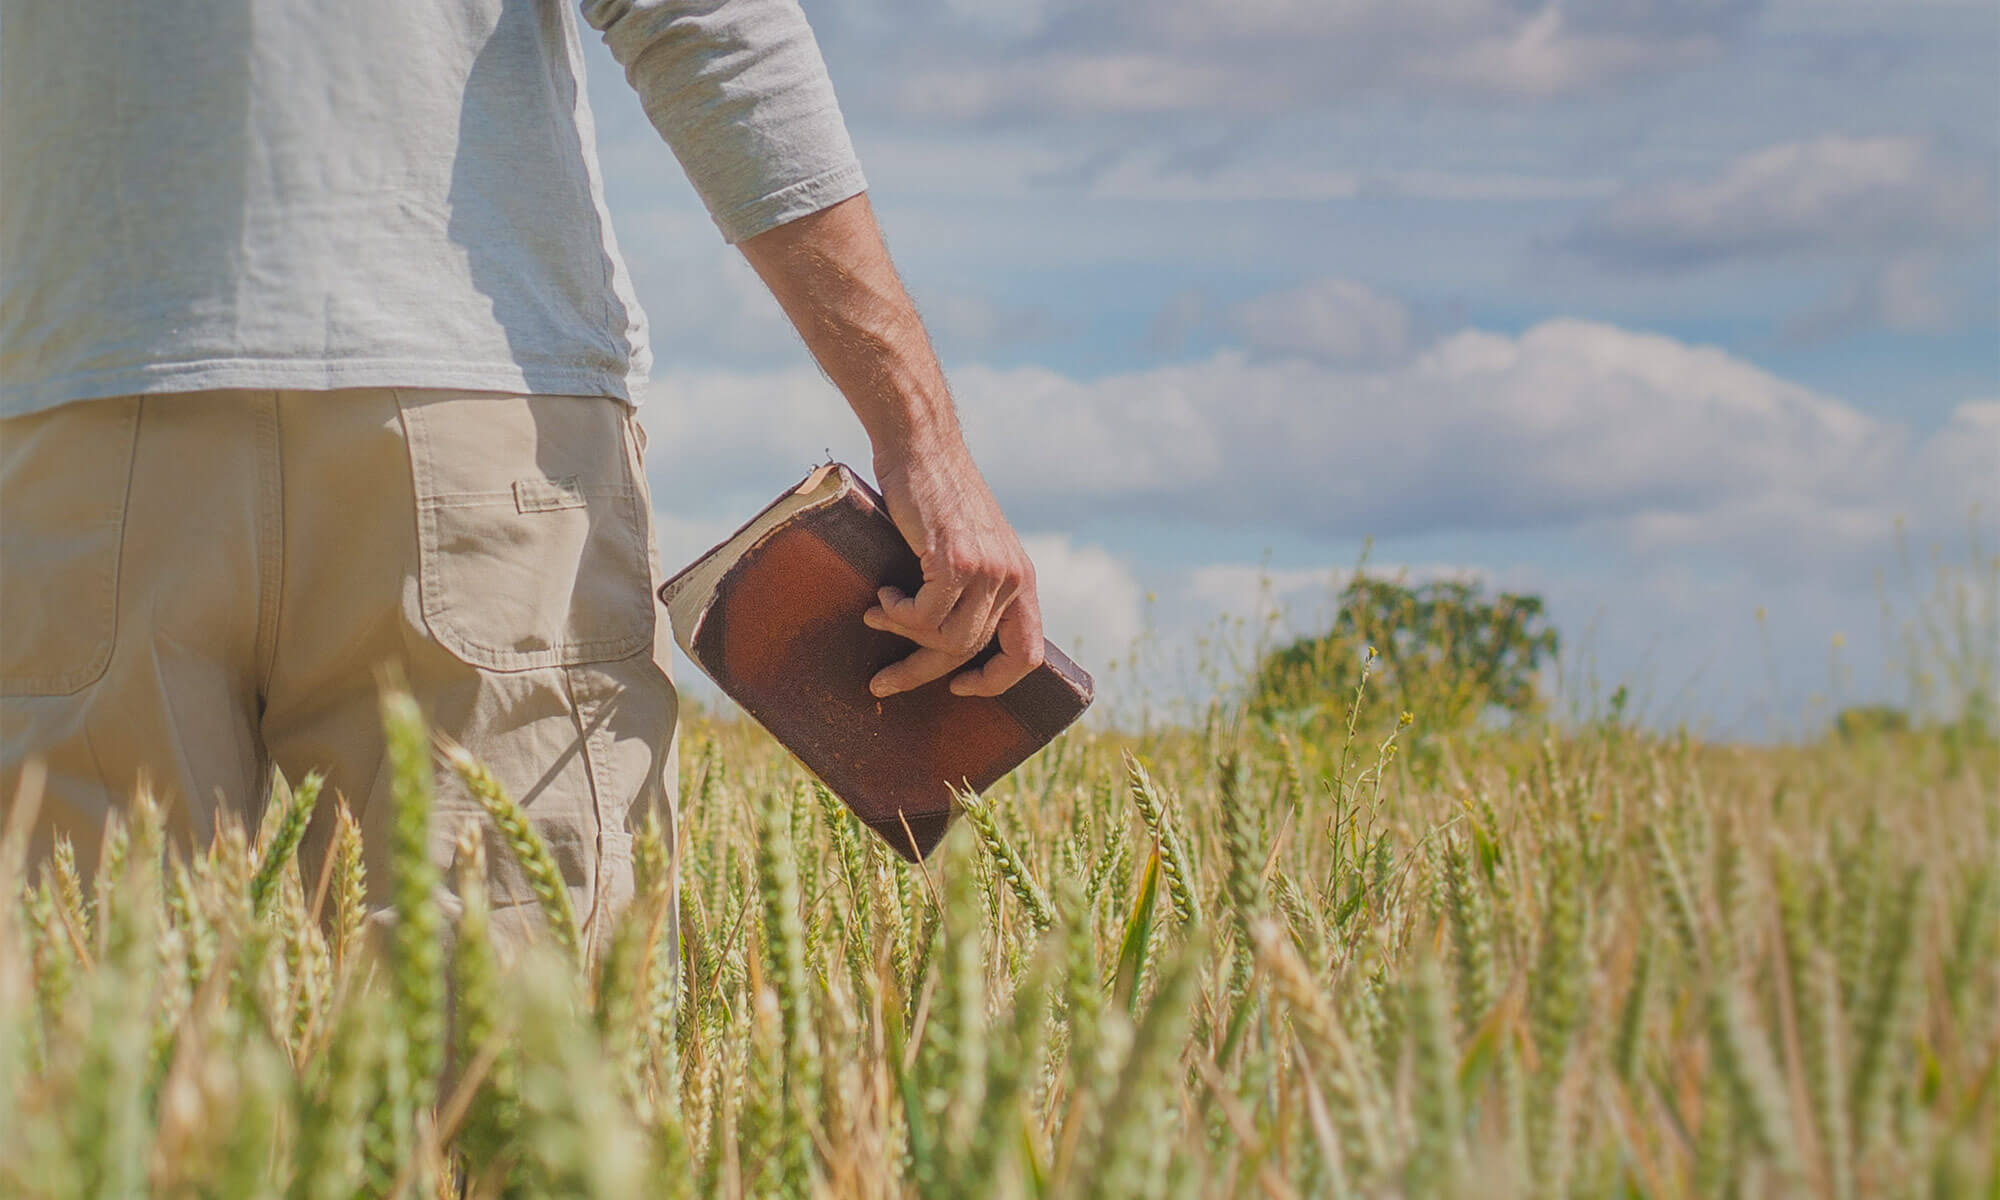 carrying-bible-in-field